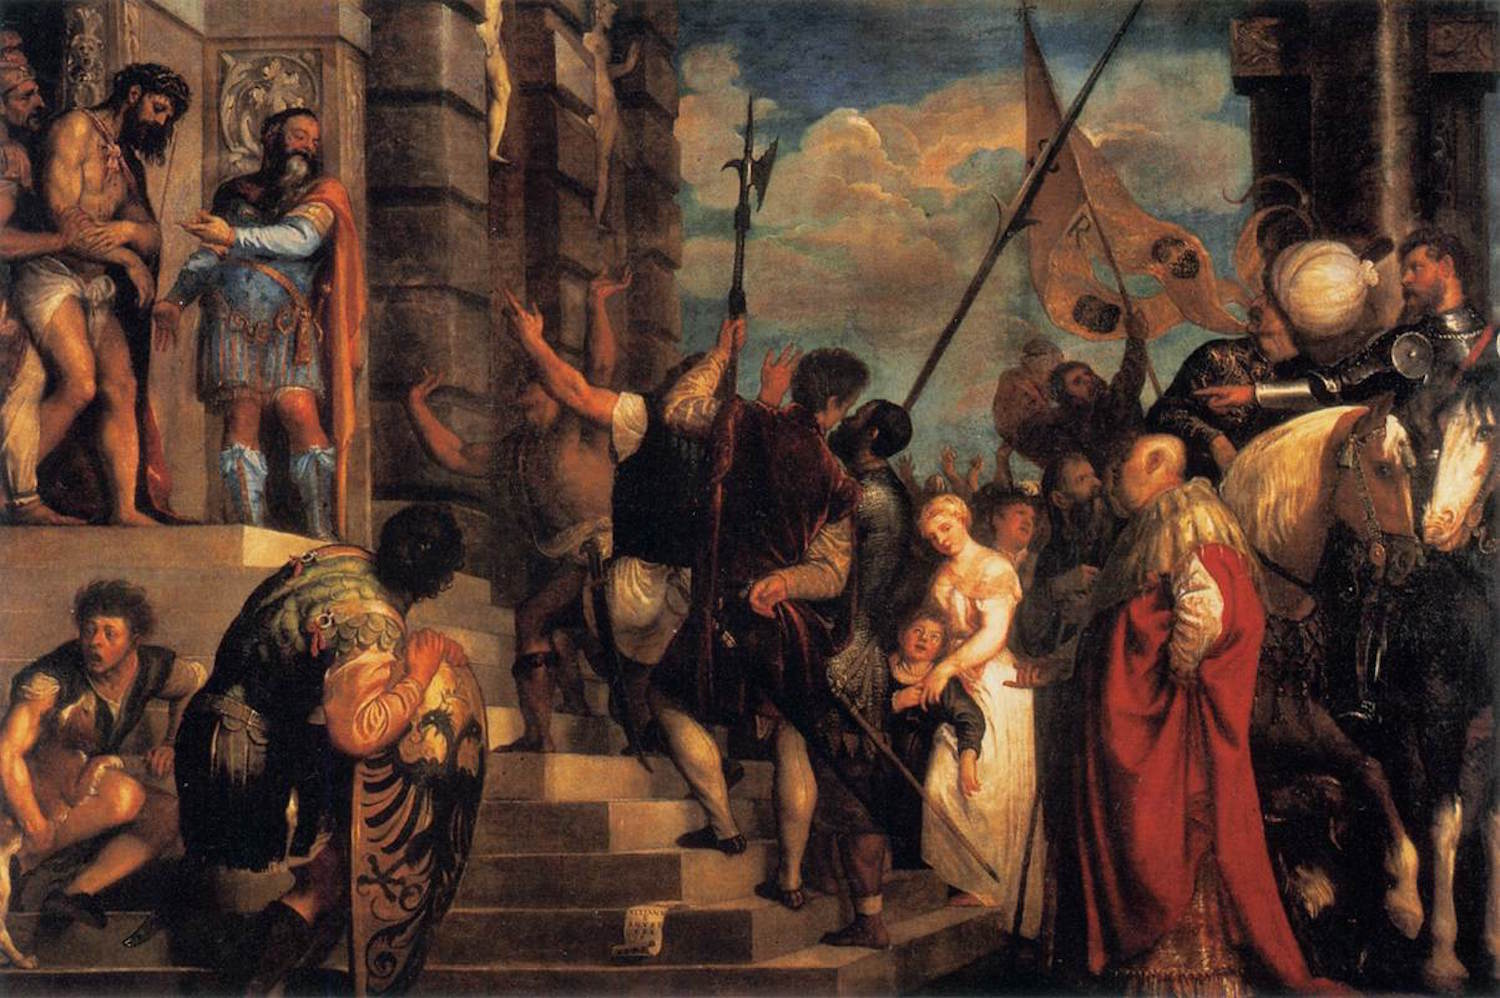 """""""Ecce Homo,"""" as imagined by the 16th century Titian (Tiziano Vecelli). Note elements contemporary with the artist's own time such as the polearms in the center of the scene or the round white Tülbend on the head of the man on the right. Image from here ."""